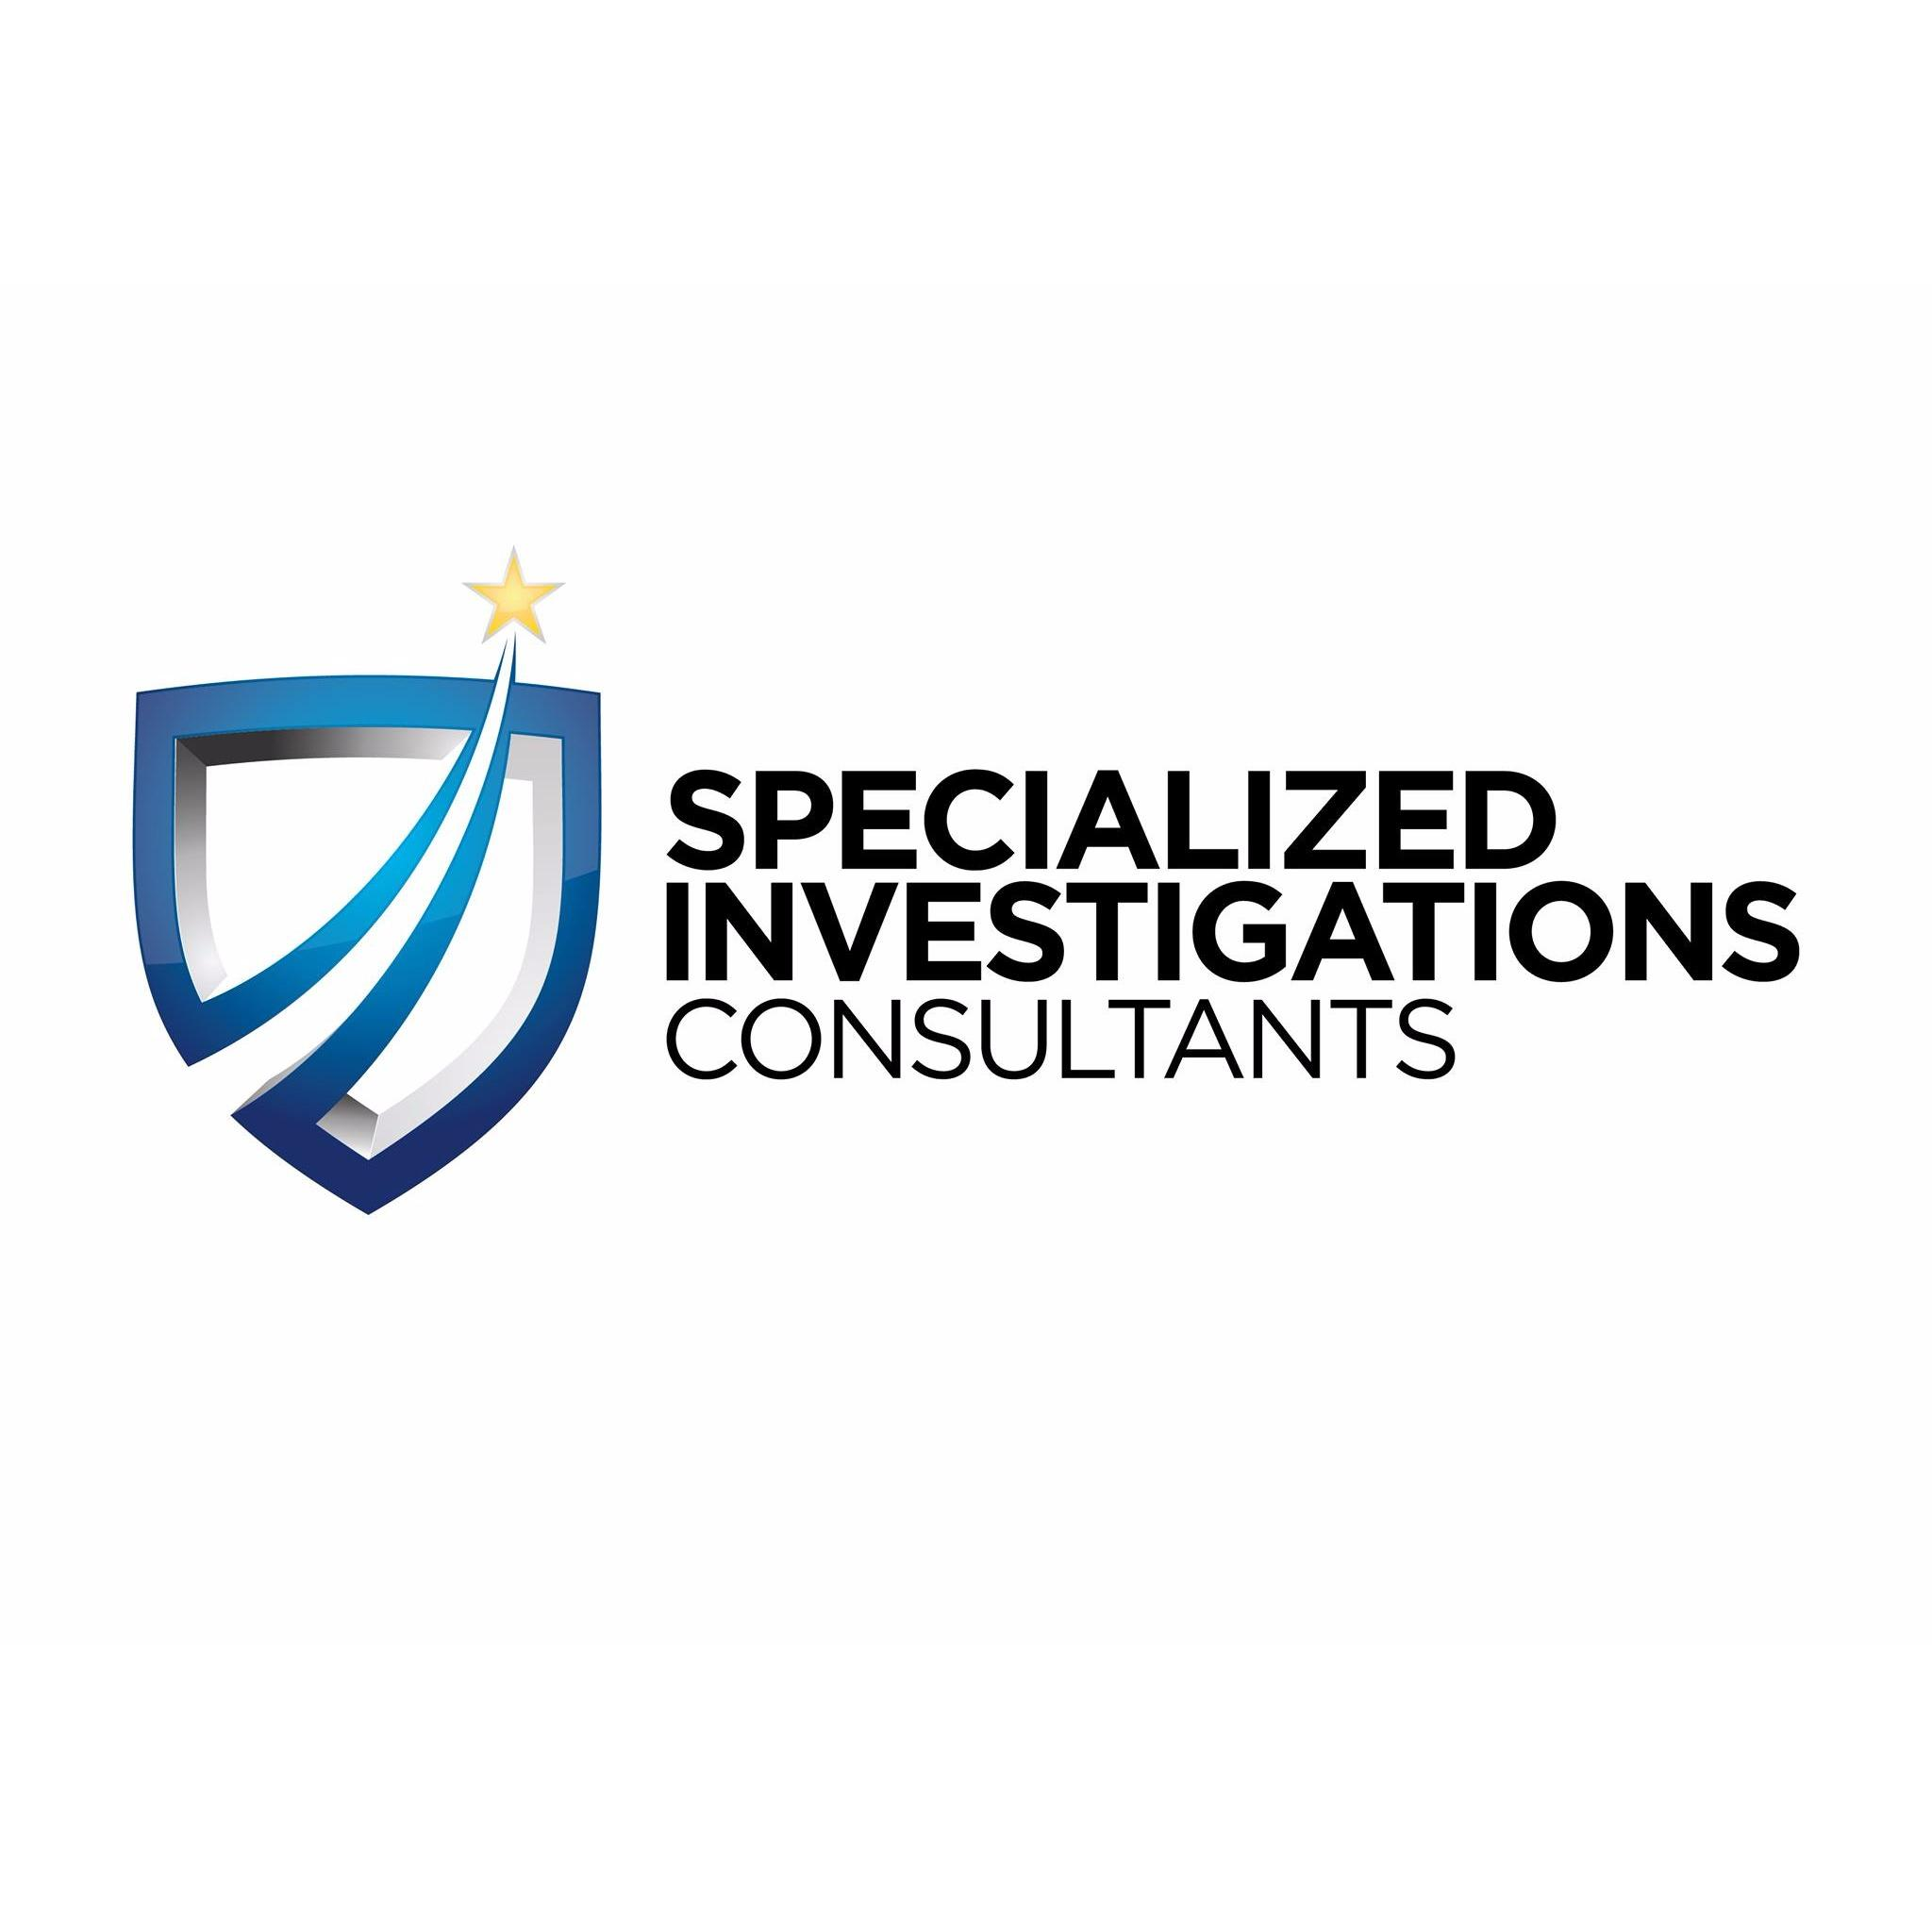 Specialized Investigations Consultants